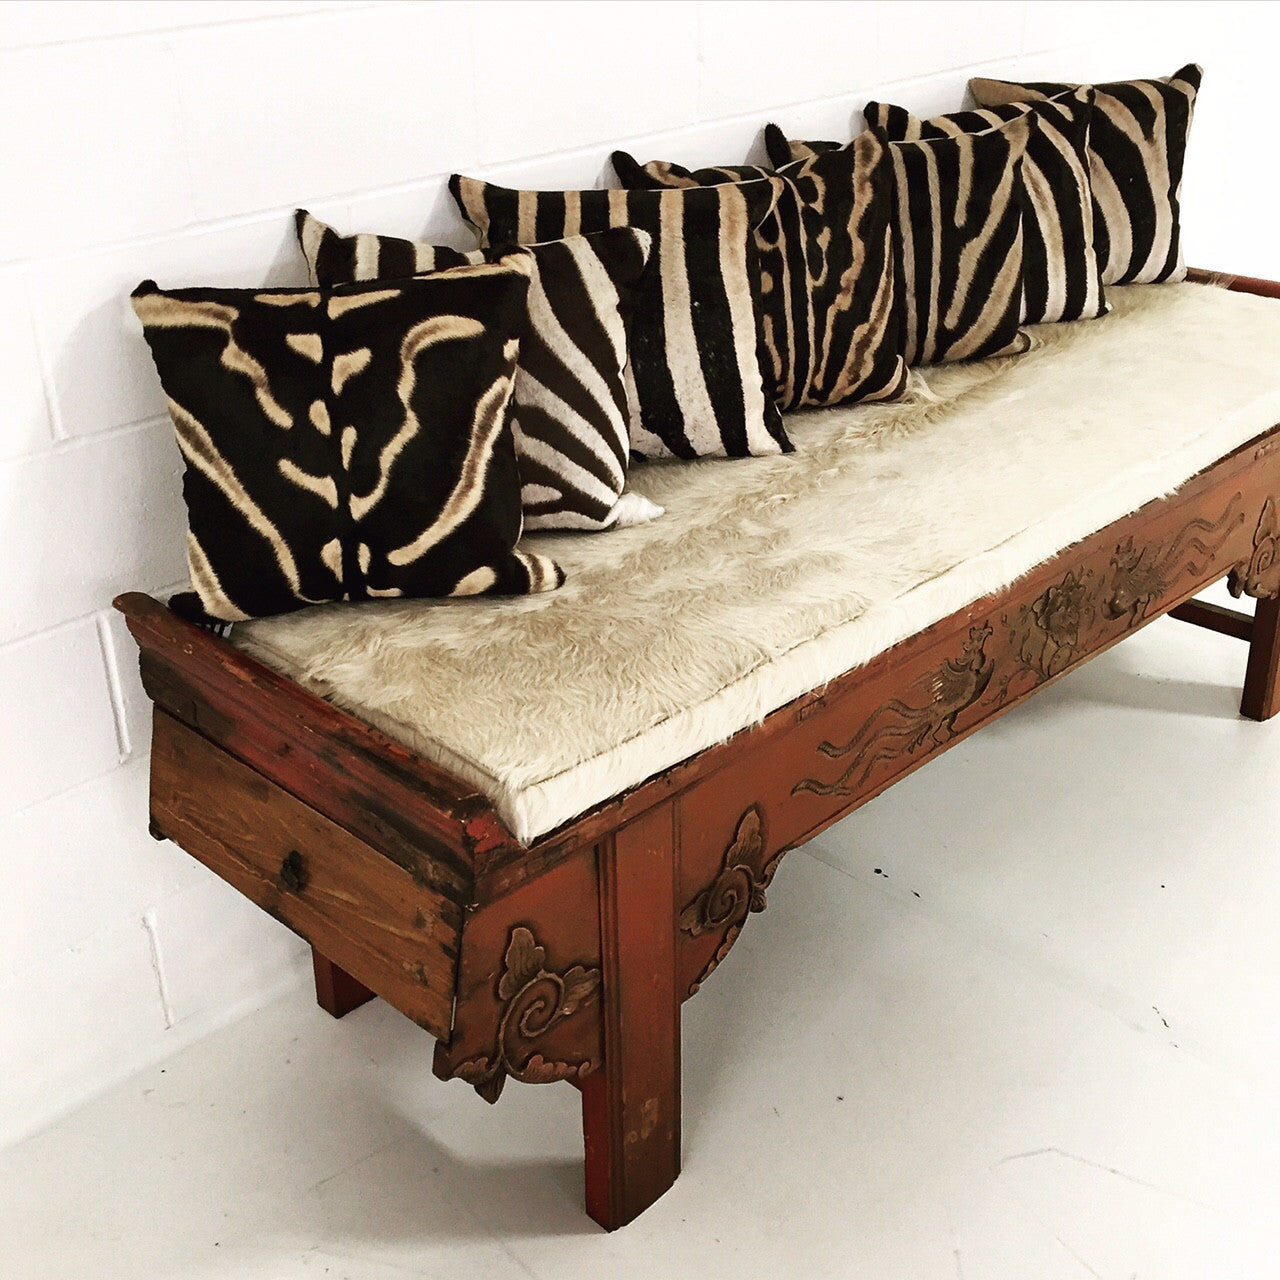 Chinese Bench with Brazilian Cowhide Cushion - FORSYTH